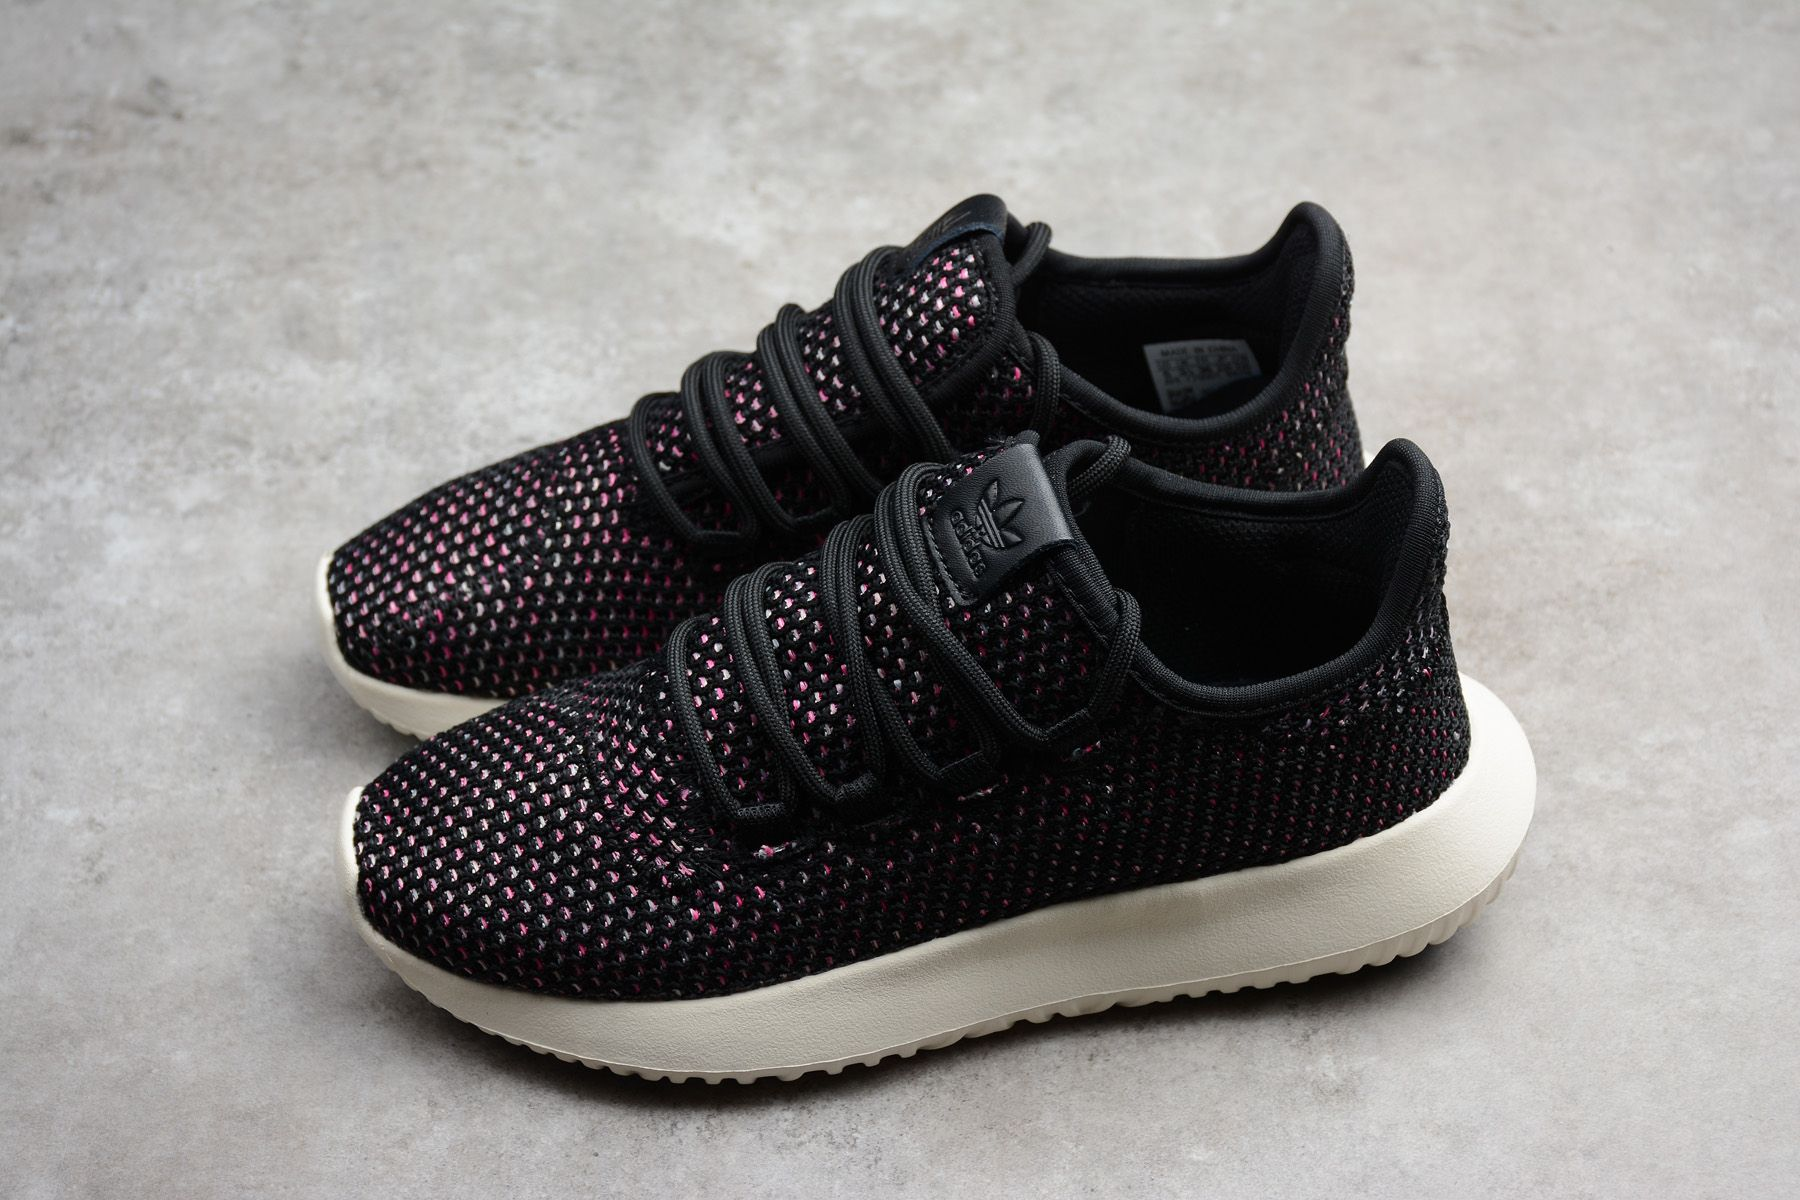 7b56b864277b New adidas Originals Tubular Shadow CK Black White-Pink AQ0886 ...